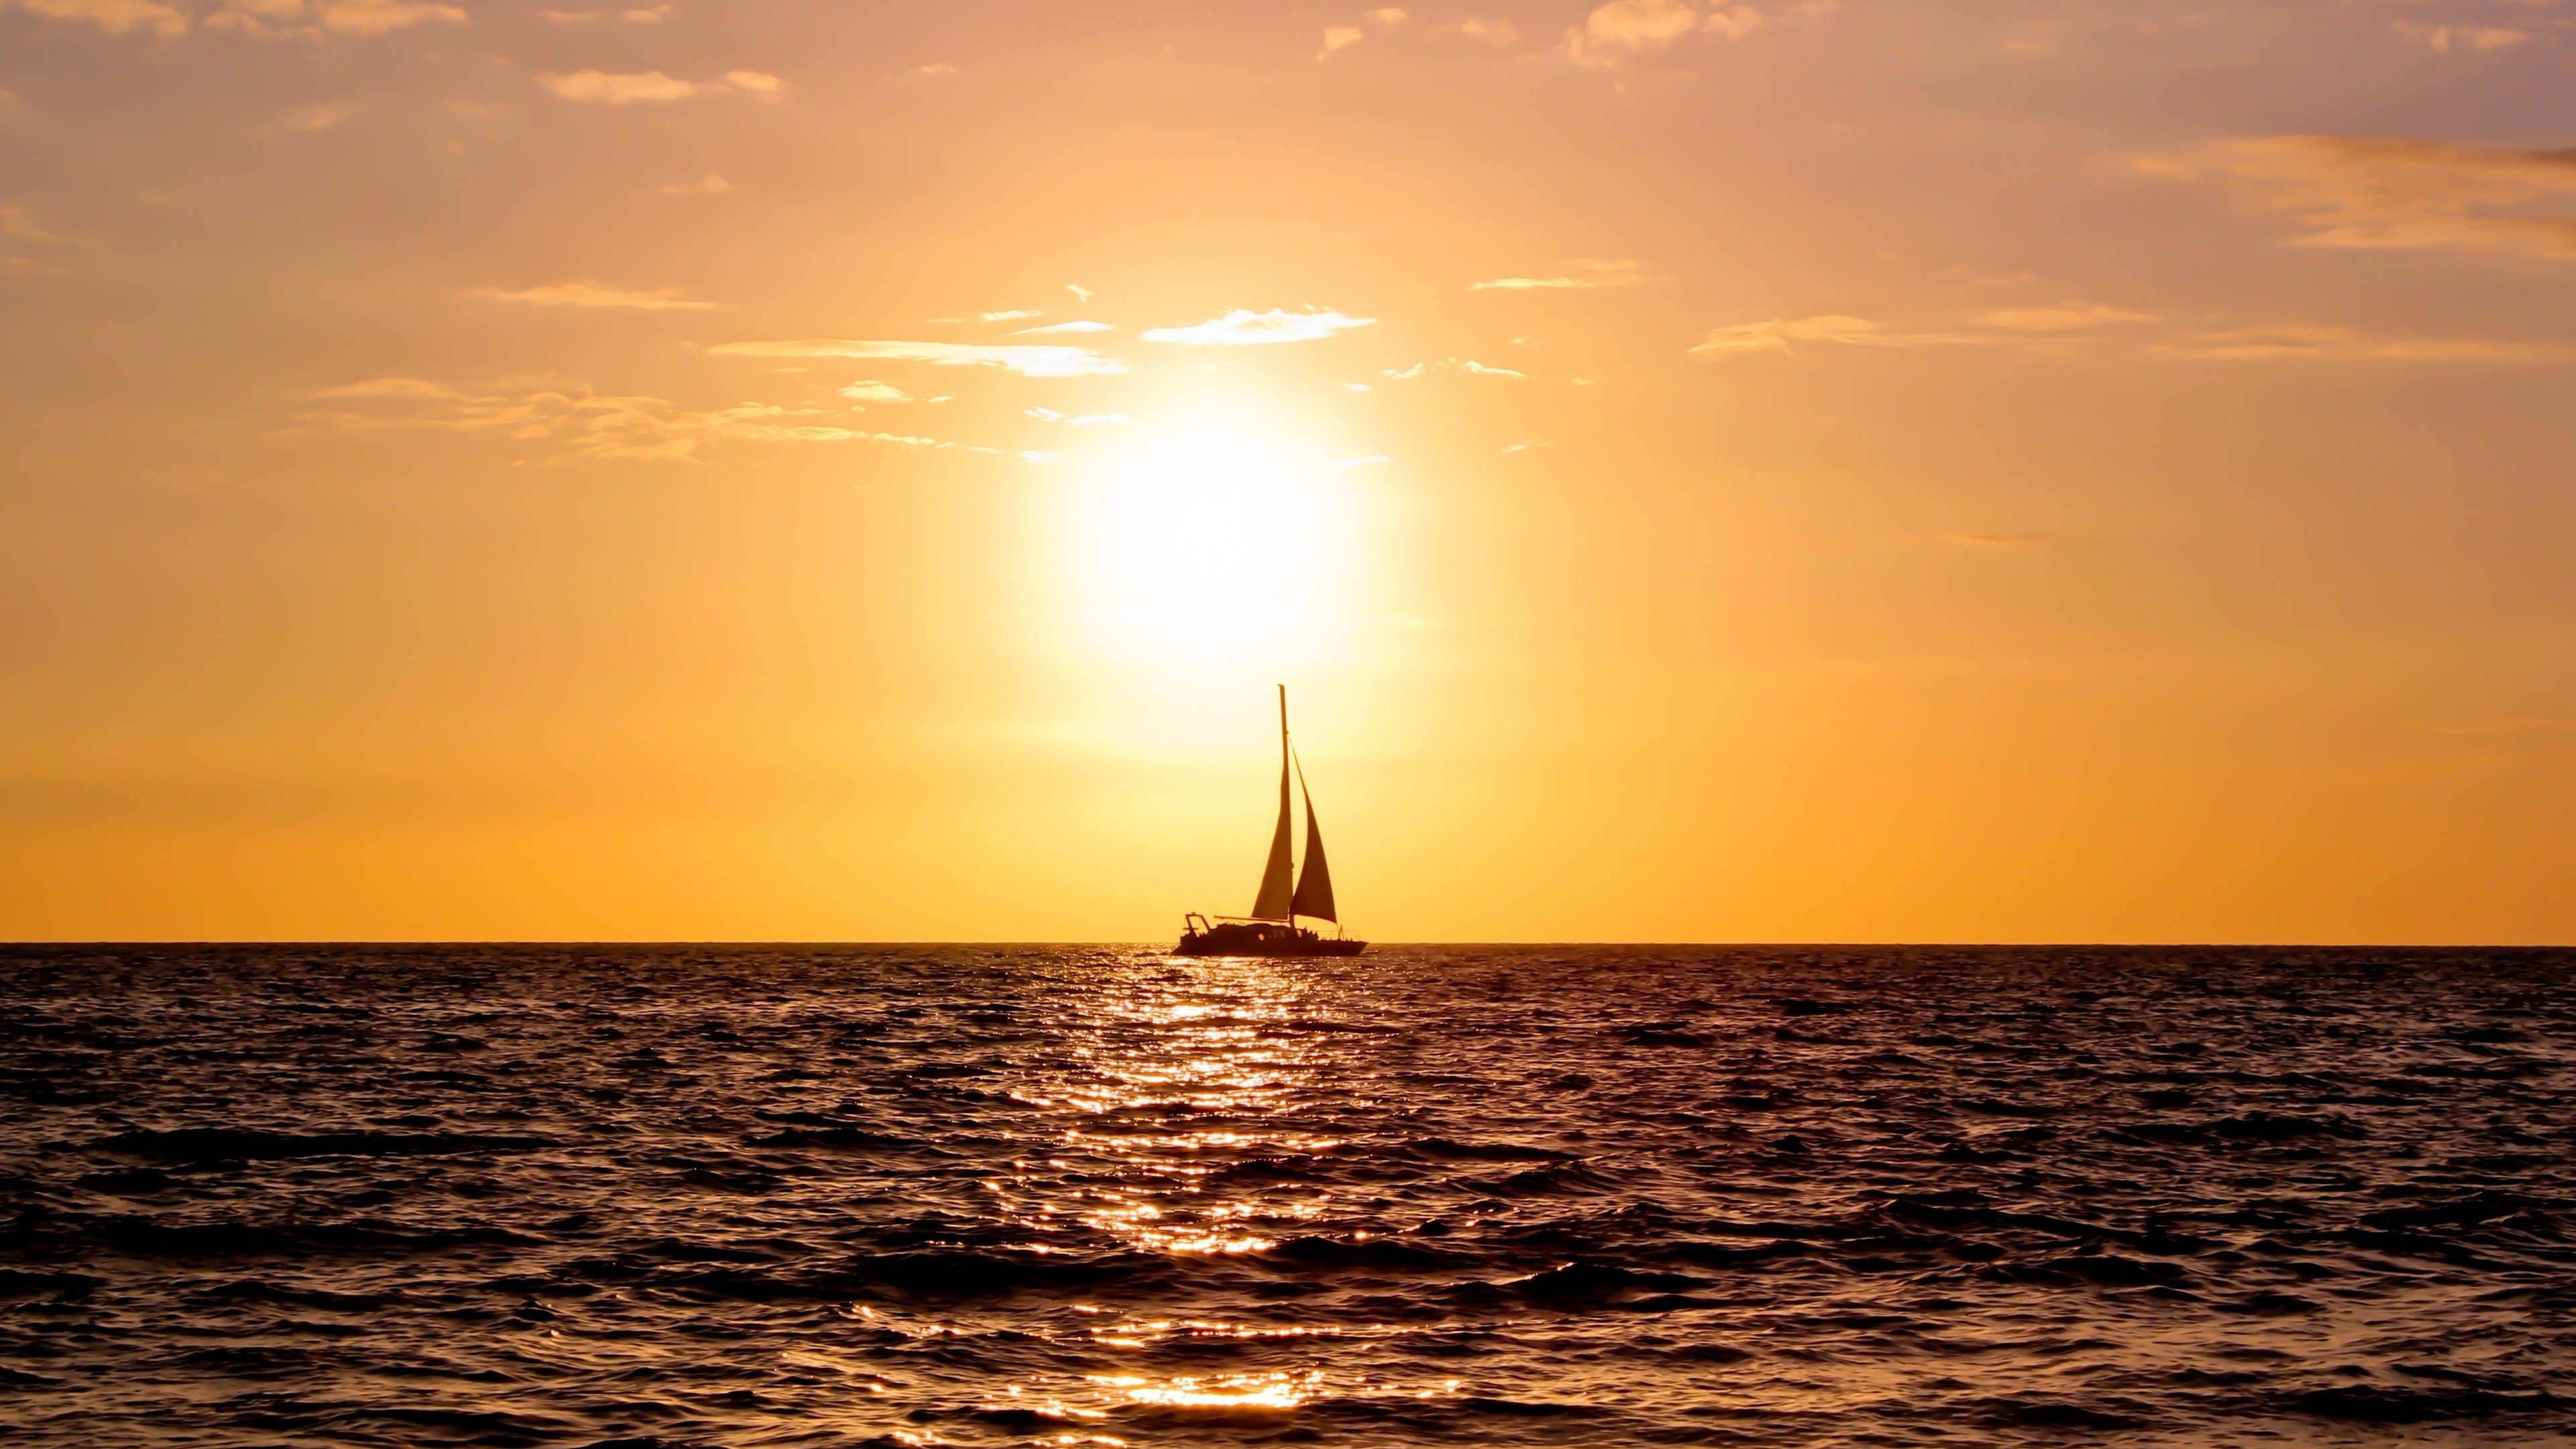 sailboat 4k ultra hd wallpaper and background image